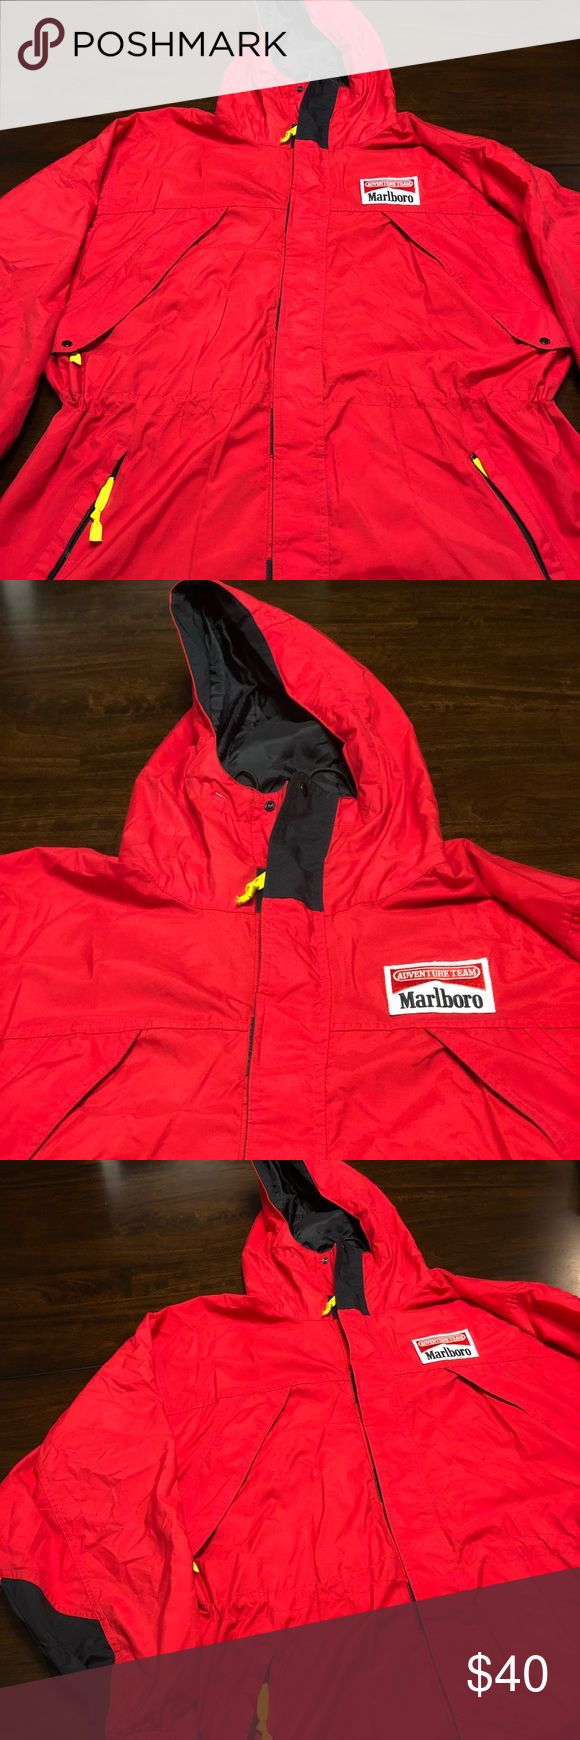 VTG 90s MARLBORO MAN PARKA ADULT L/XL USED CNDTS Adult large fits x large  Preowned conditions   Vintage 90s   Adult large but fits XL aswell   Read measurements below   Pit to pit: 26 in  Shoulder-cuff: 25 in  Collar-waist: 33 in   Light wear and marks however nothing to make the item defective   Not much wear to it marlboro Jackets & Coats Windbreakers